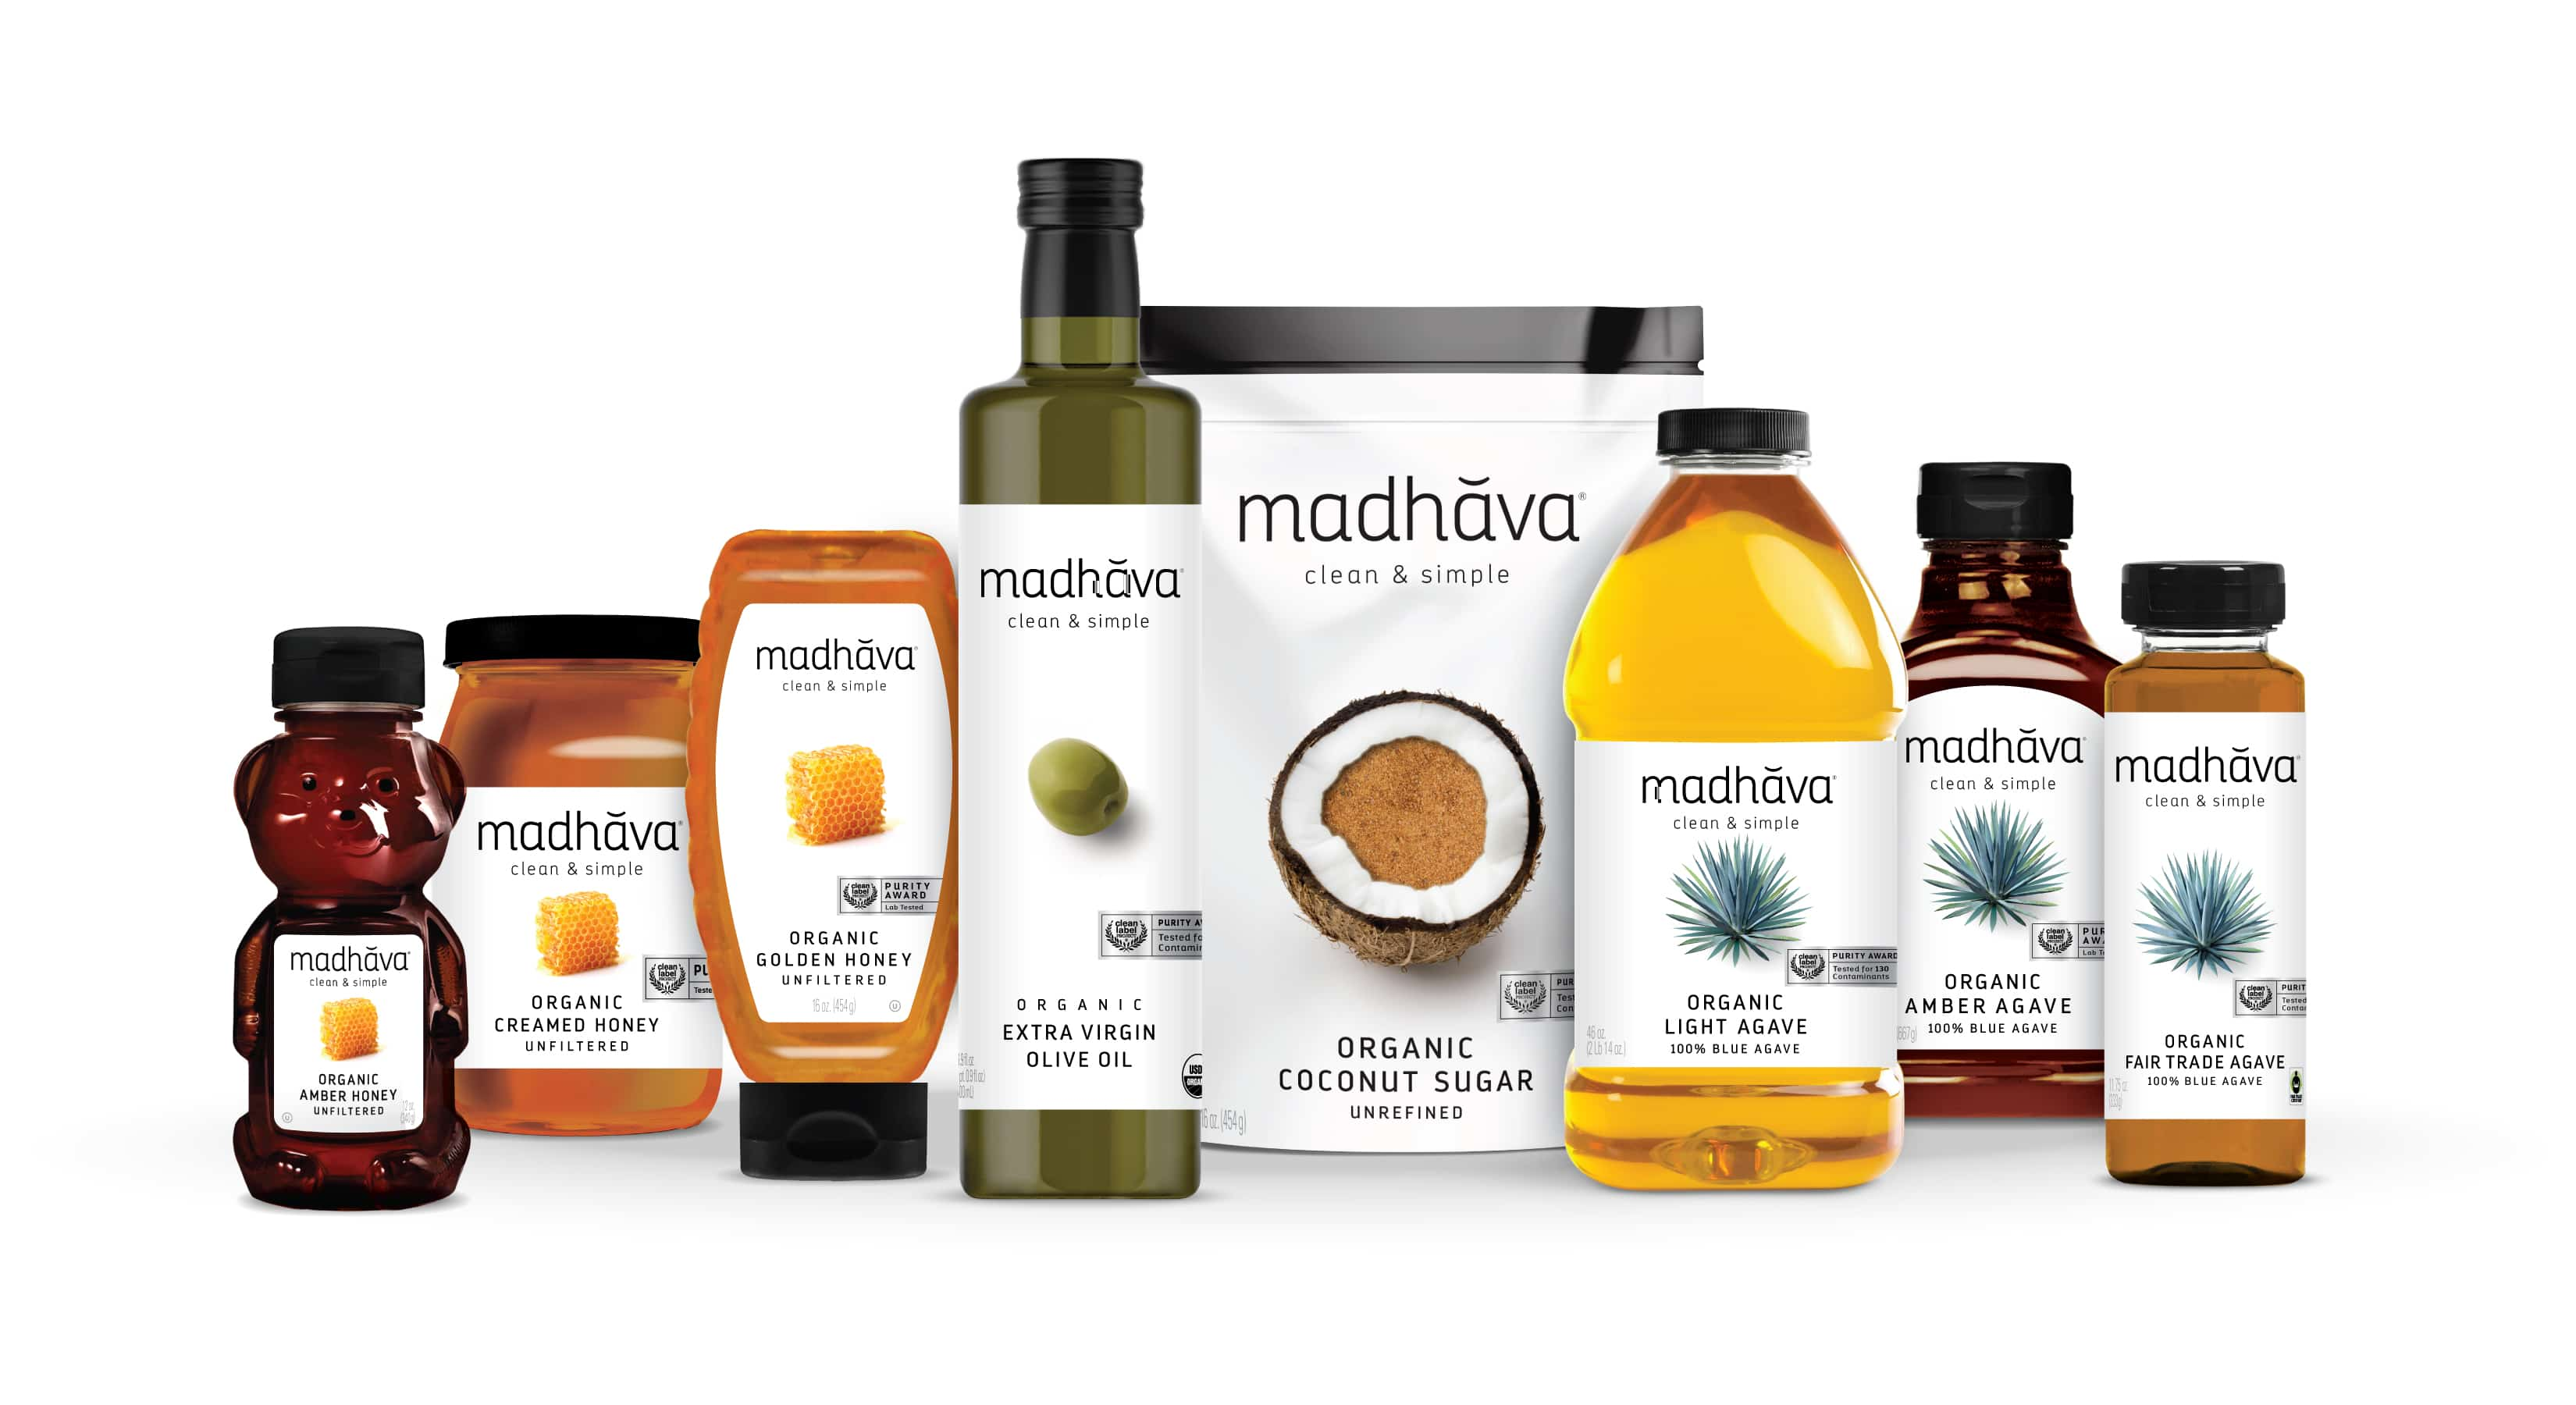 Madhava Launches Organic Extra Virgin Olive Oil